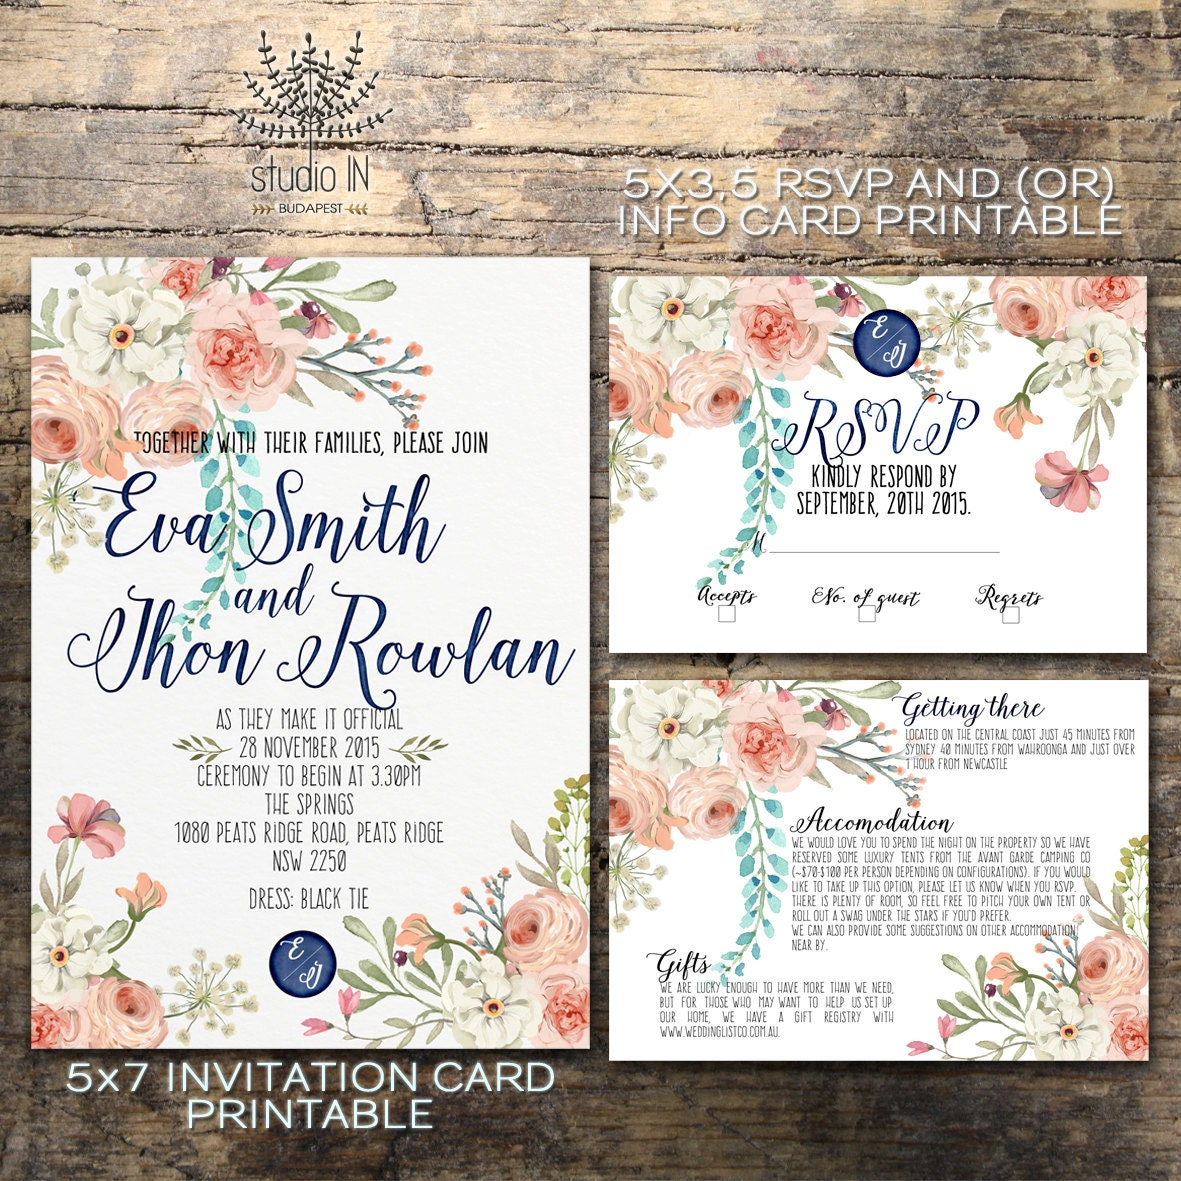 Printable Wedding Invitations: Floral Wedding Invitation Printable Wedding Invitation Rustic